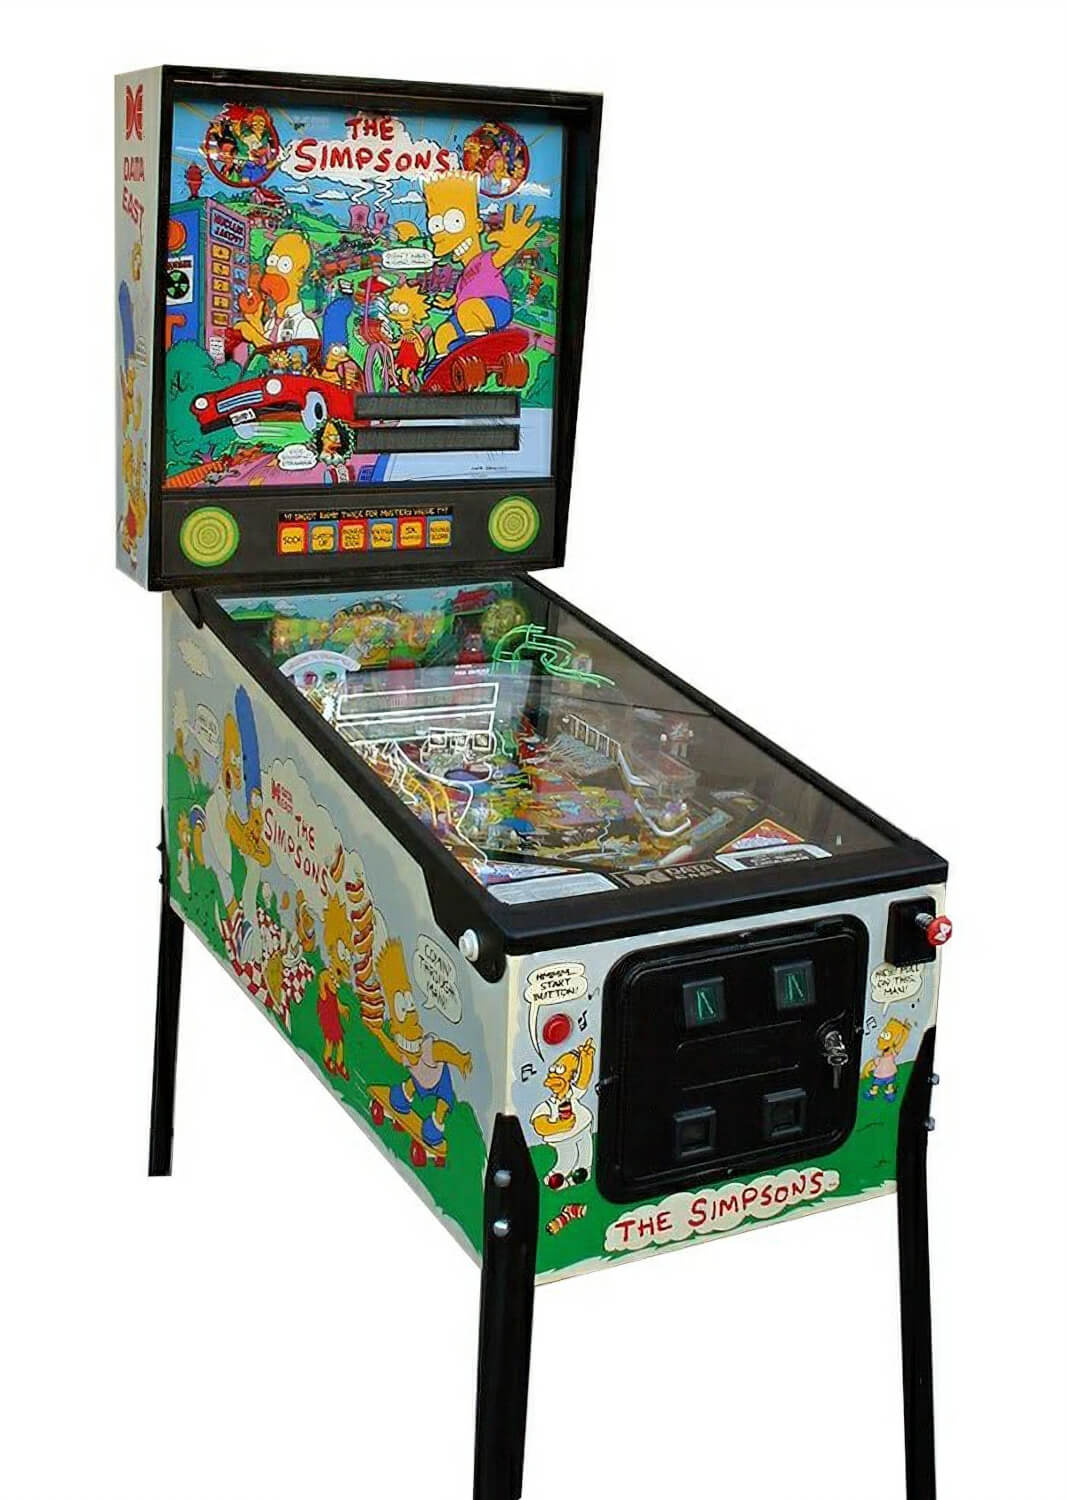 The Simpsons Pinball Machine Liberty Games : 3600simpsons pinball from www.libertygames.co.uk size 700 x 984 jpeg 111kB